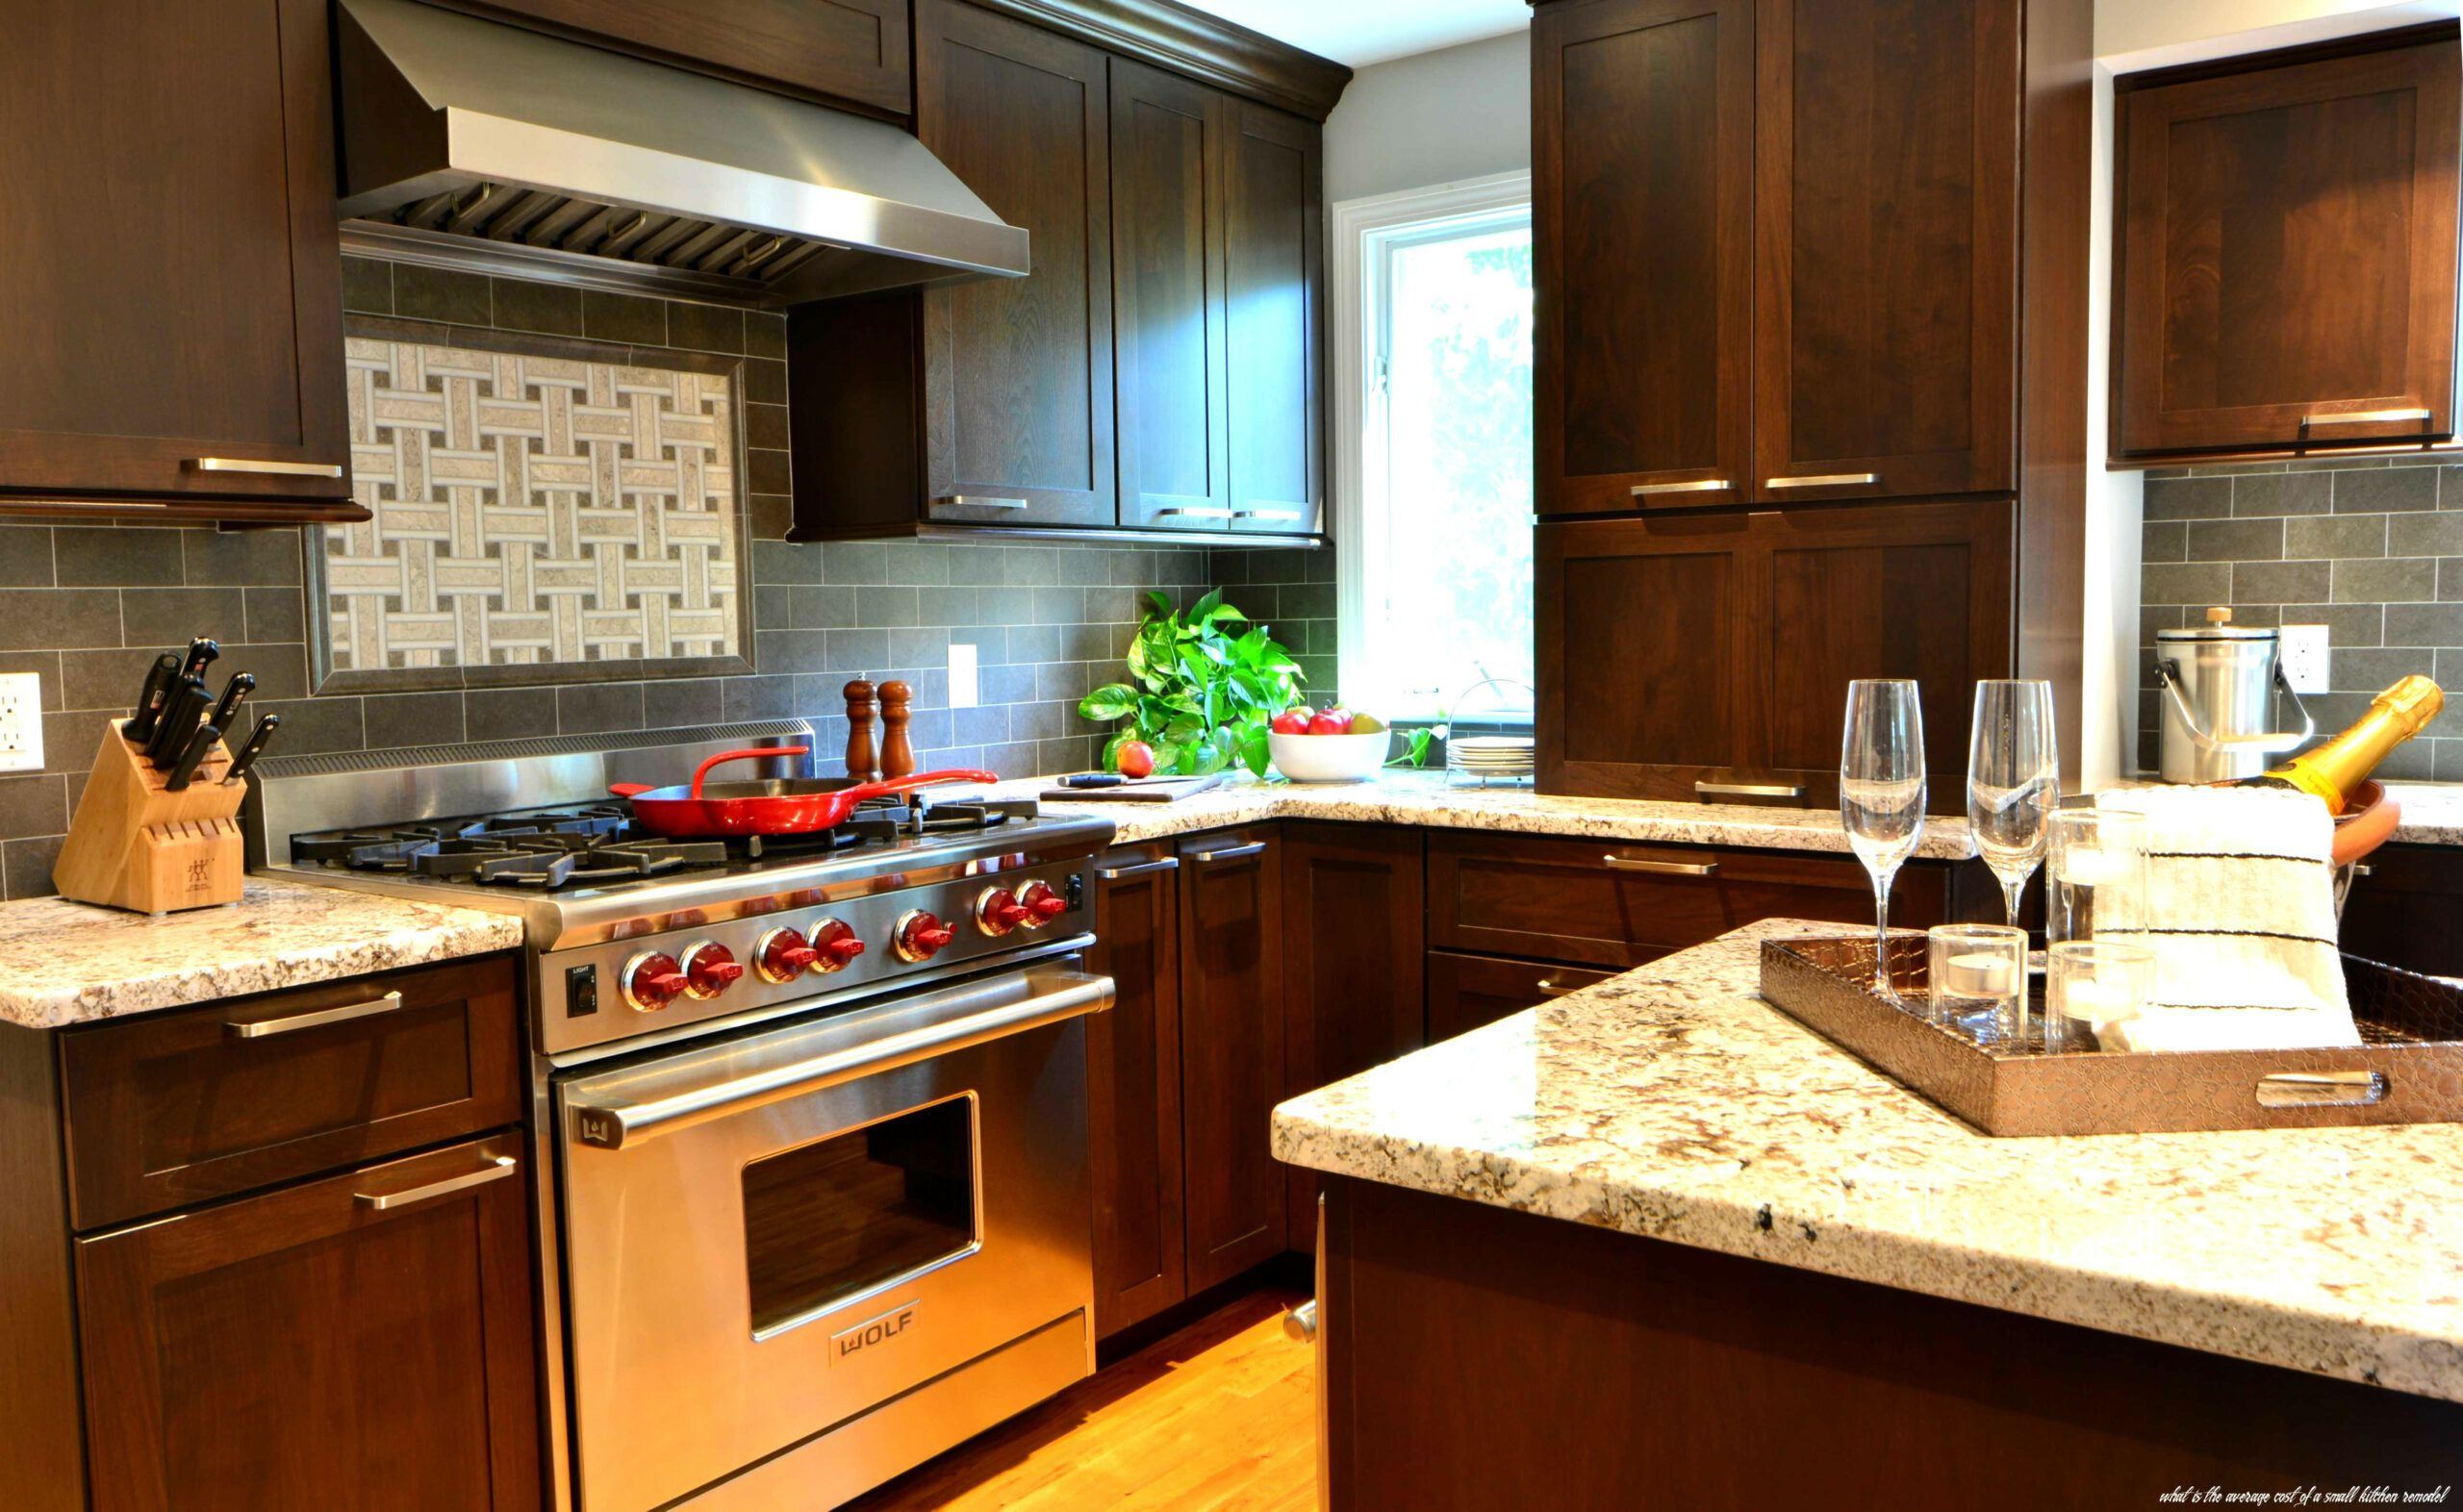 What Is The Average Cost Of A Small Kitchen Remodel In 2020 Kitchen Remodel Kitchen Remodel Cost Kitchen Remodel Small